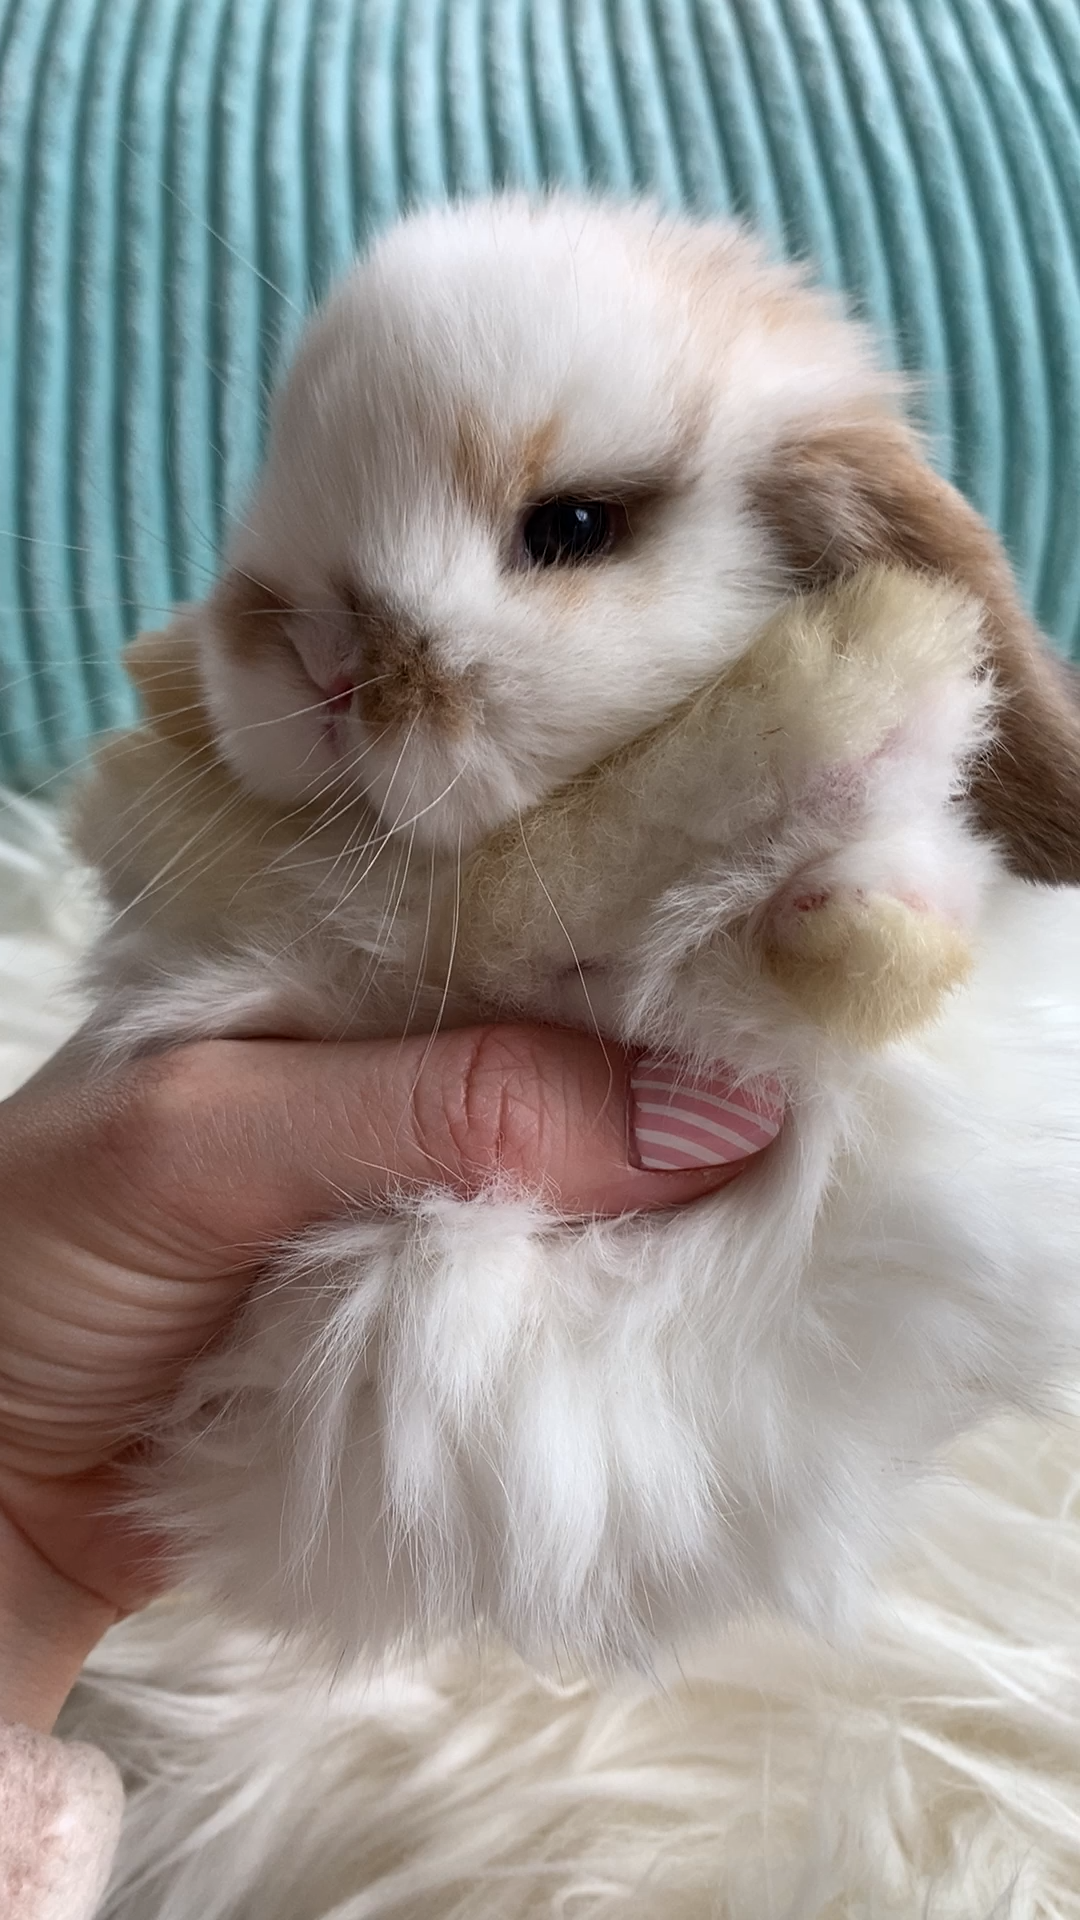 This little bunny is so precious. Fluff to the max. We could just snuggle this fluff ball all day. || Live Sweet #sweetfluff #bunnylove #pets #animallove #livesweet @livesweet